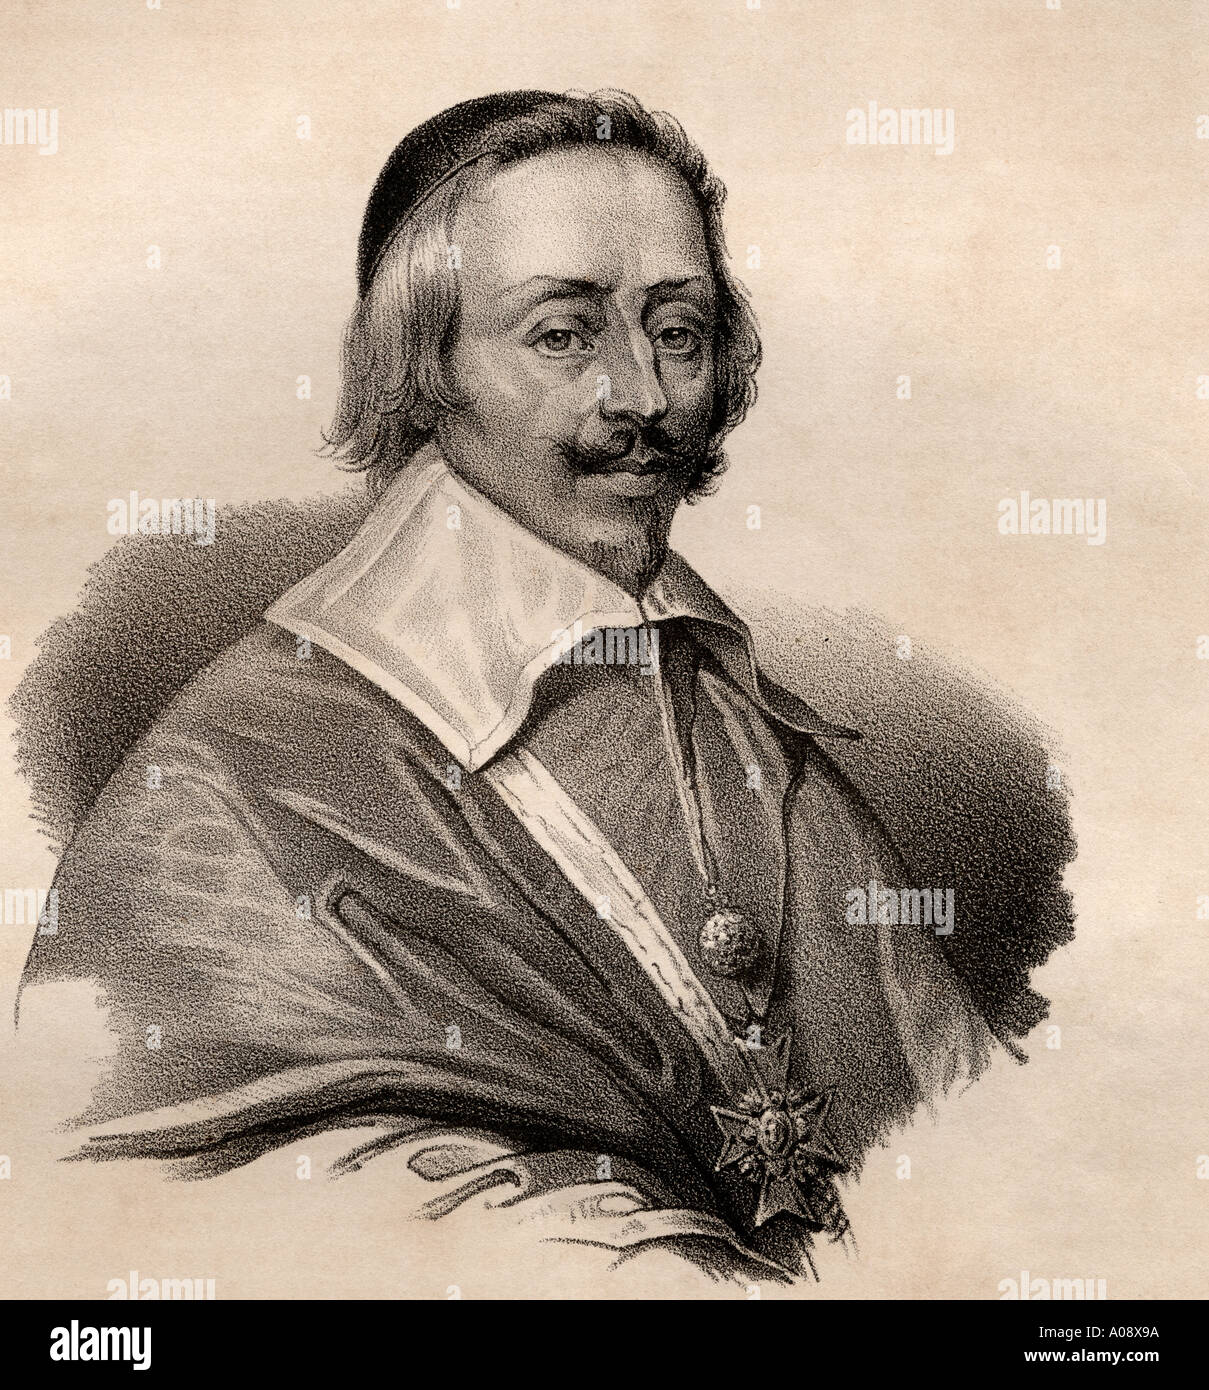 Cardinal Armand Jean du Plessis, 1st Duke of Richelieu and Fronsac, aka The Red Eminence, 1585 - 1642. French clergyman, nobleman, and statesman. - Stock Image